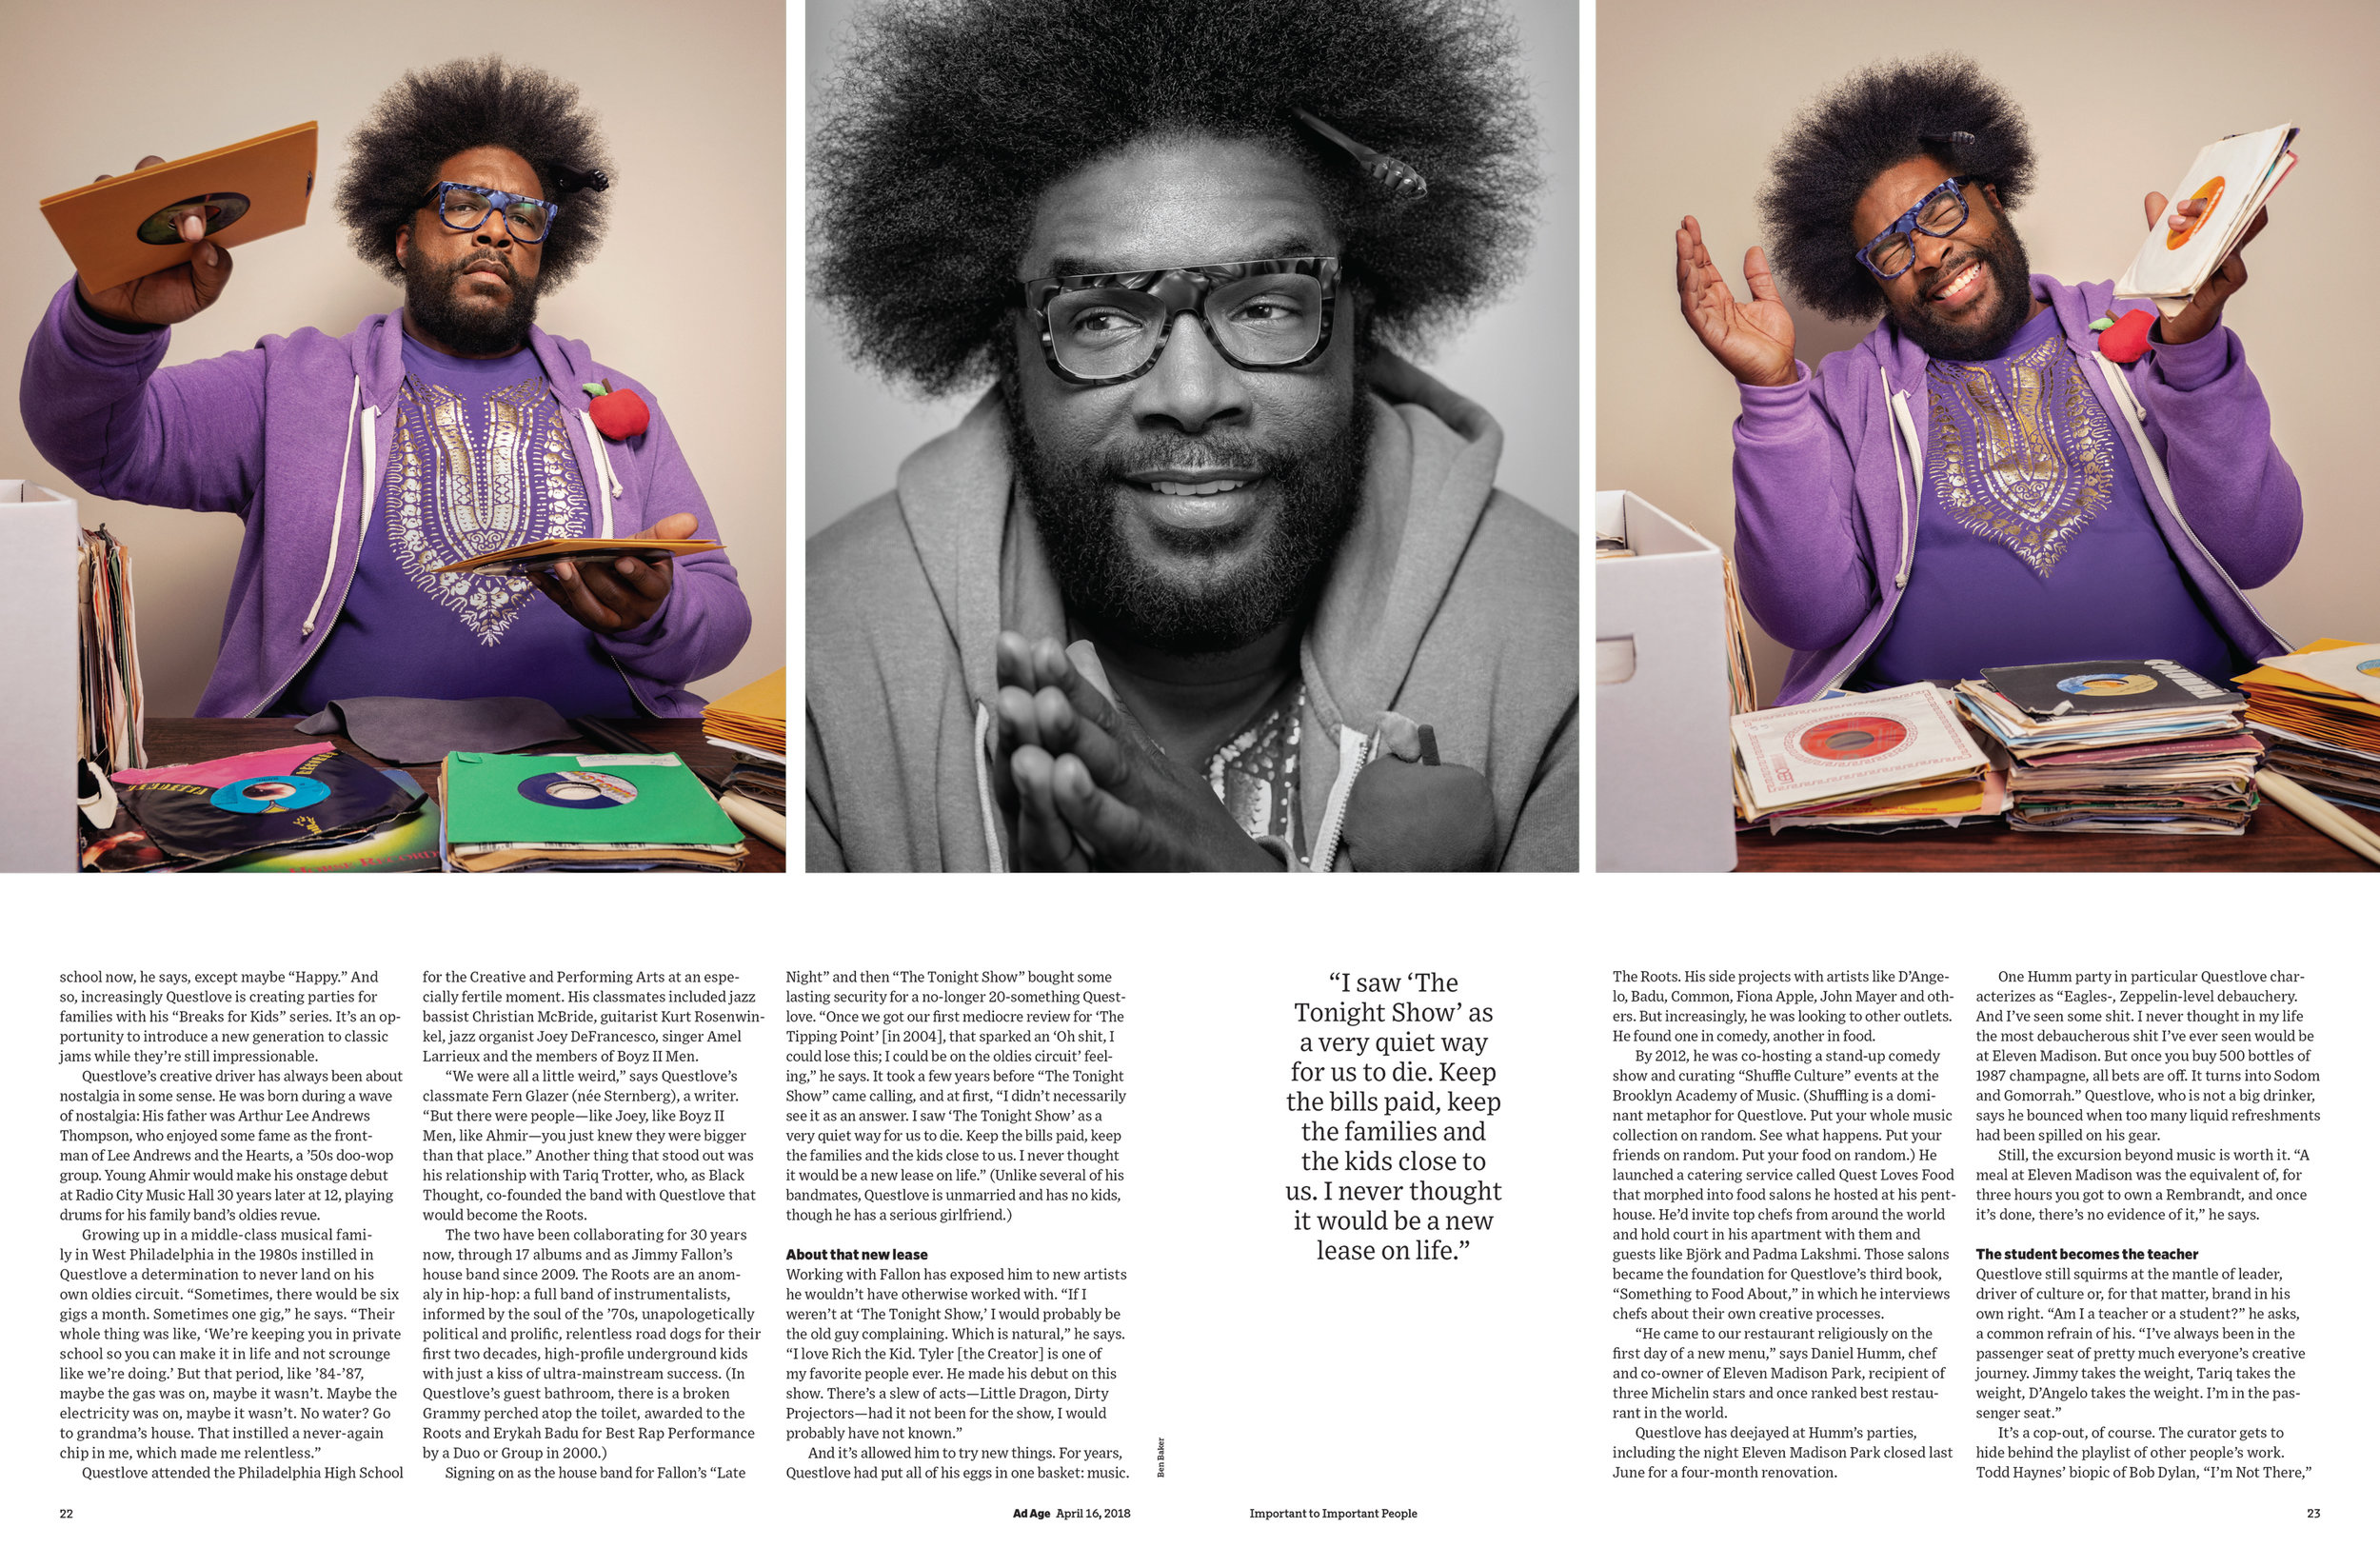 questlove_feature3_small.jpg